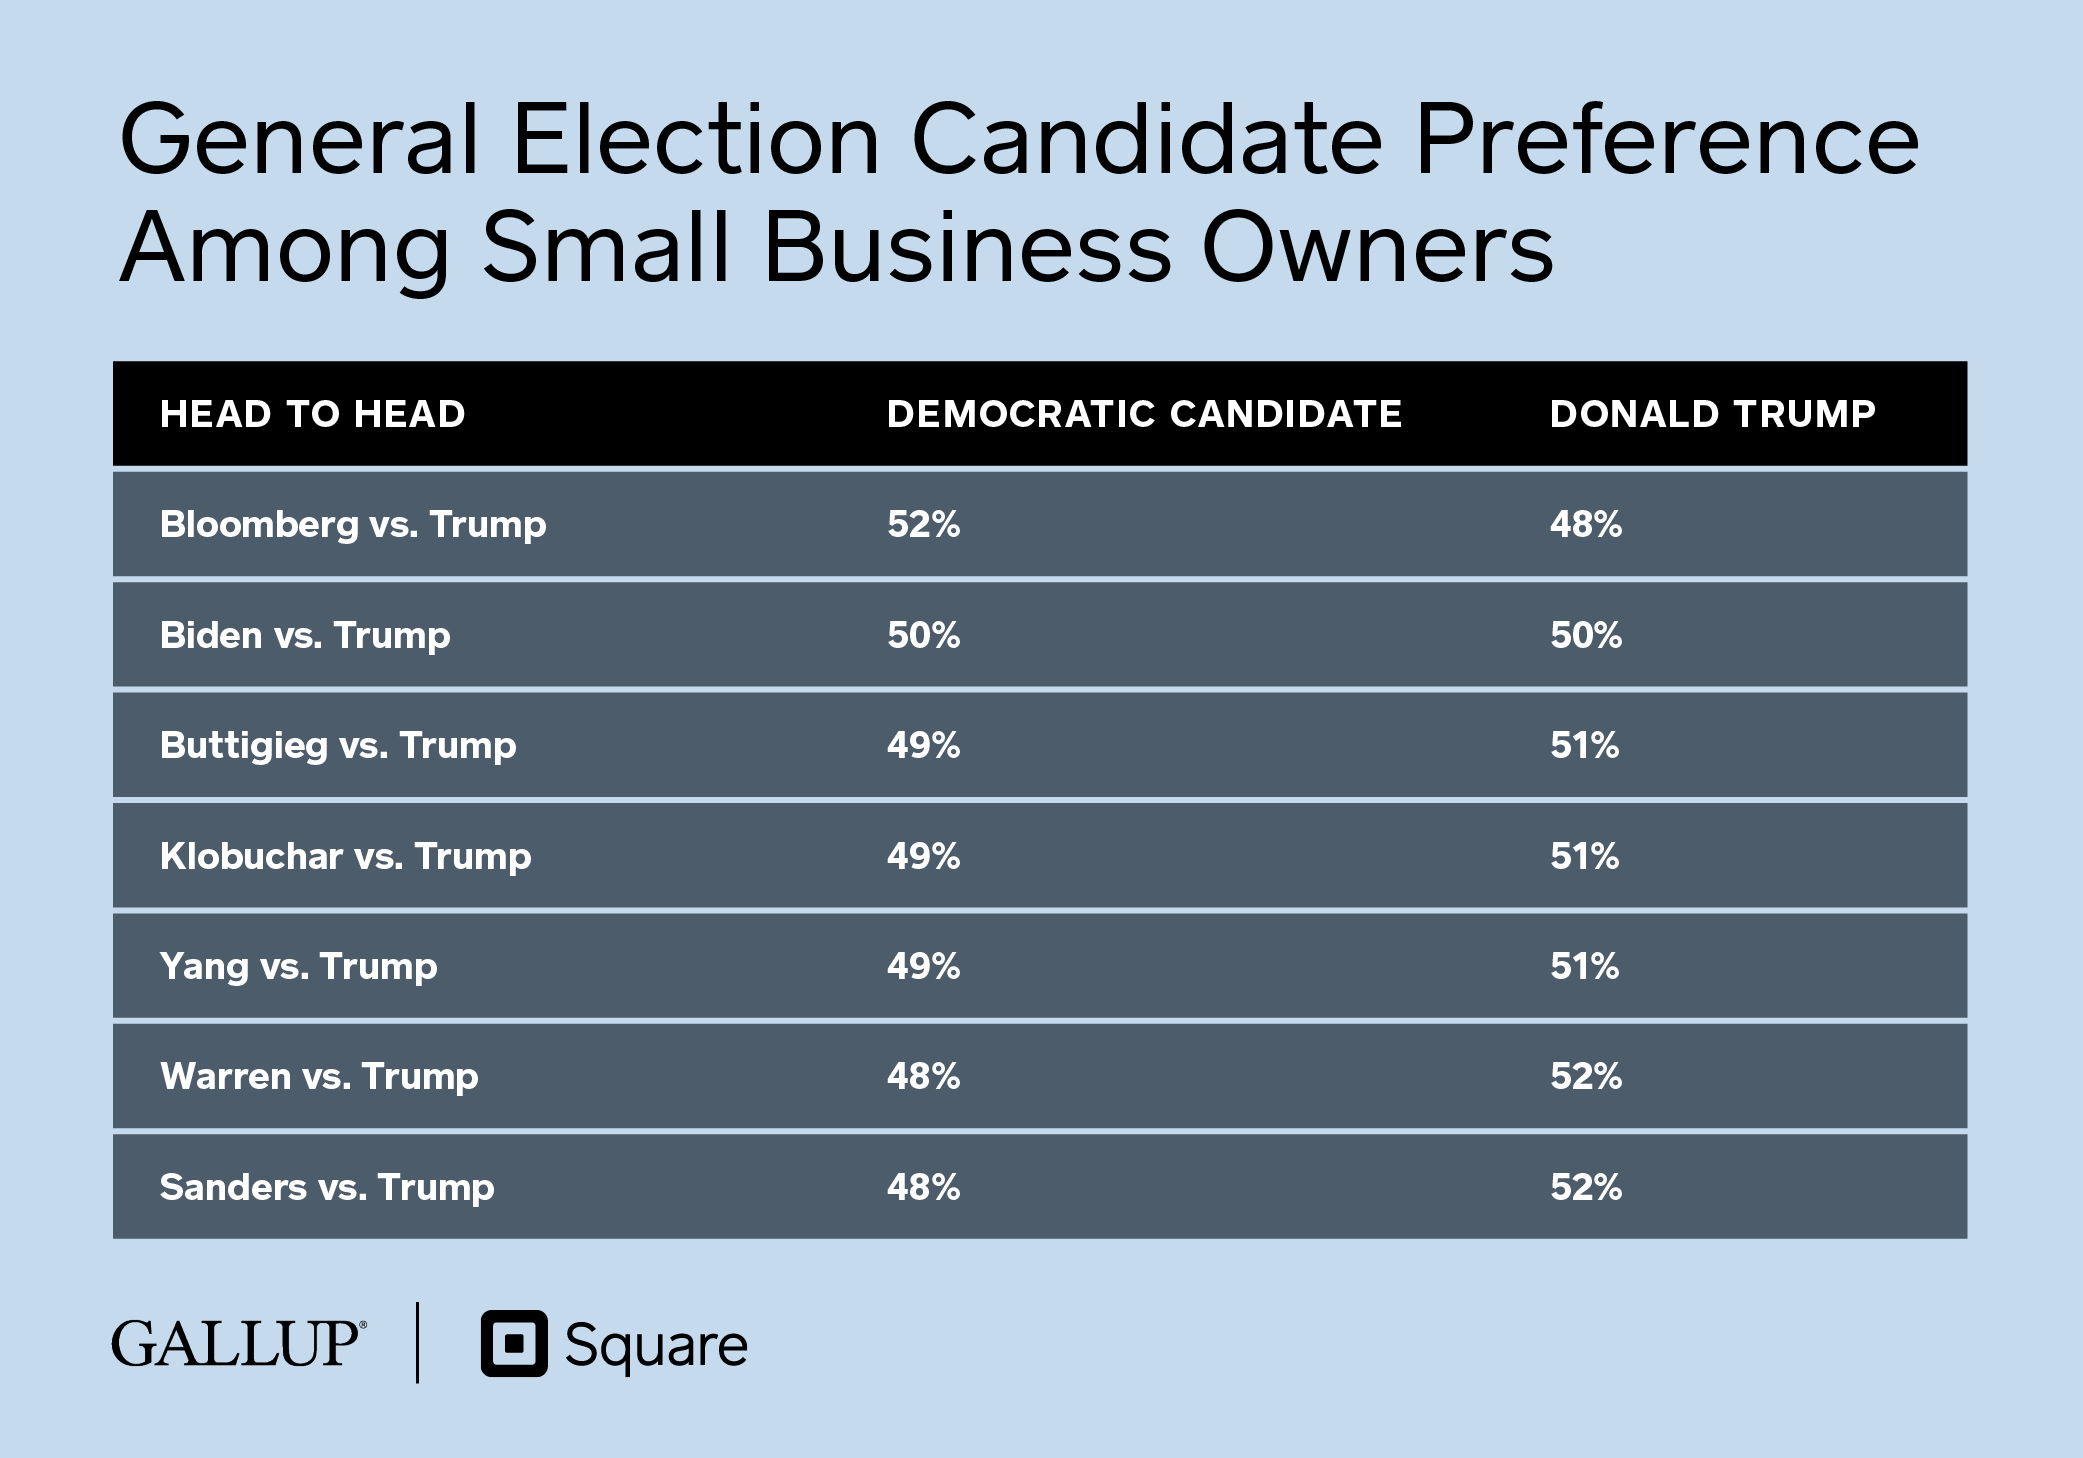 General Election Candidate Preference Among Small Business Owners (Square/Gallup Survey)